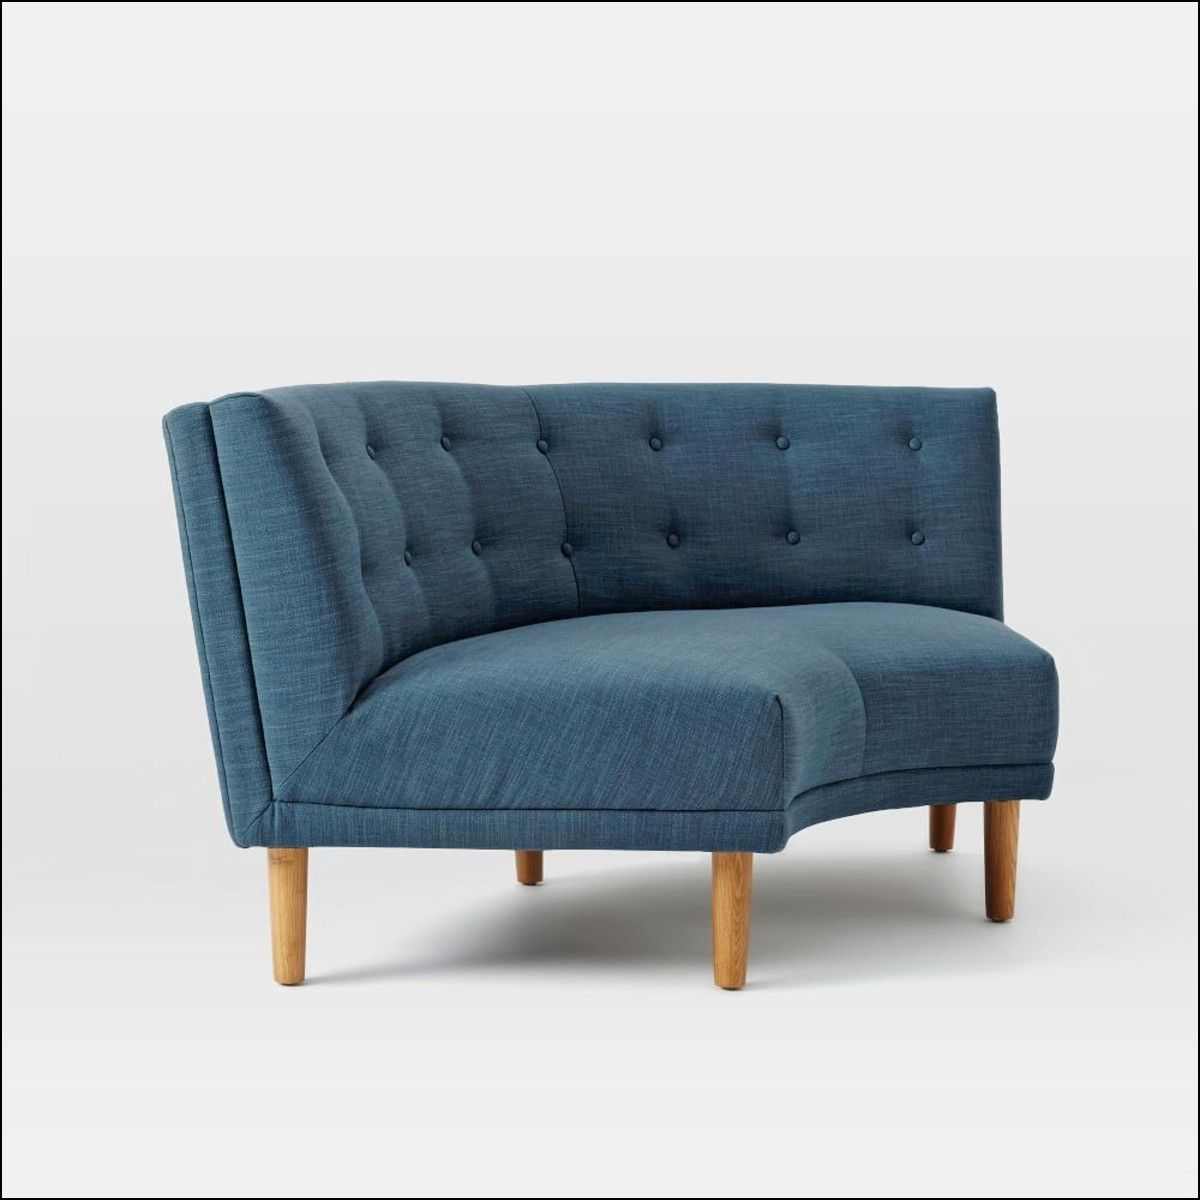 Comfortable Corner Sofa Ideas Perfect For Every Living: Small Curved Corner Sofa In 2019